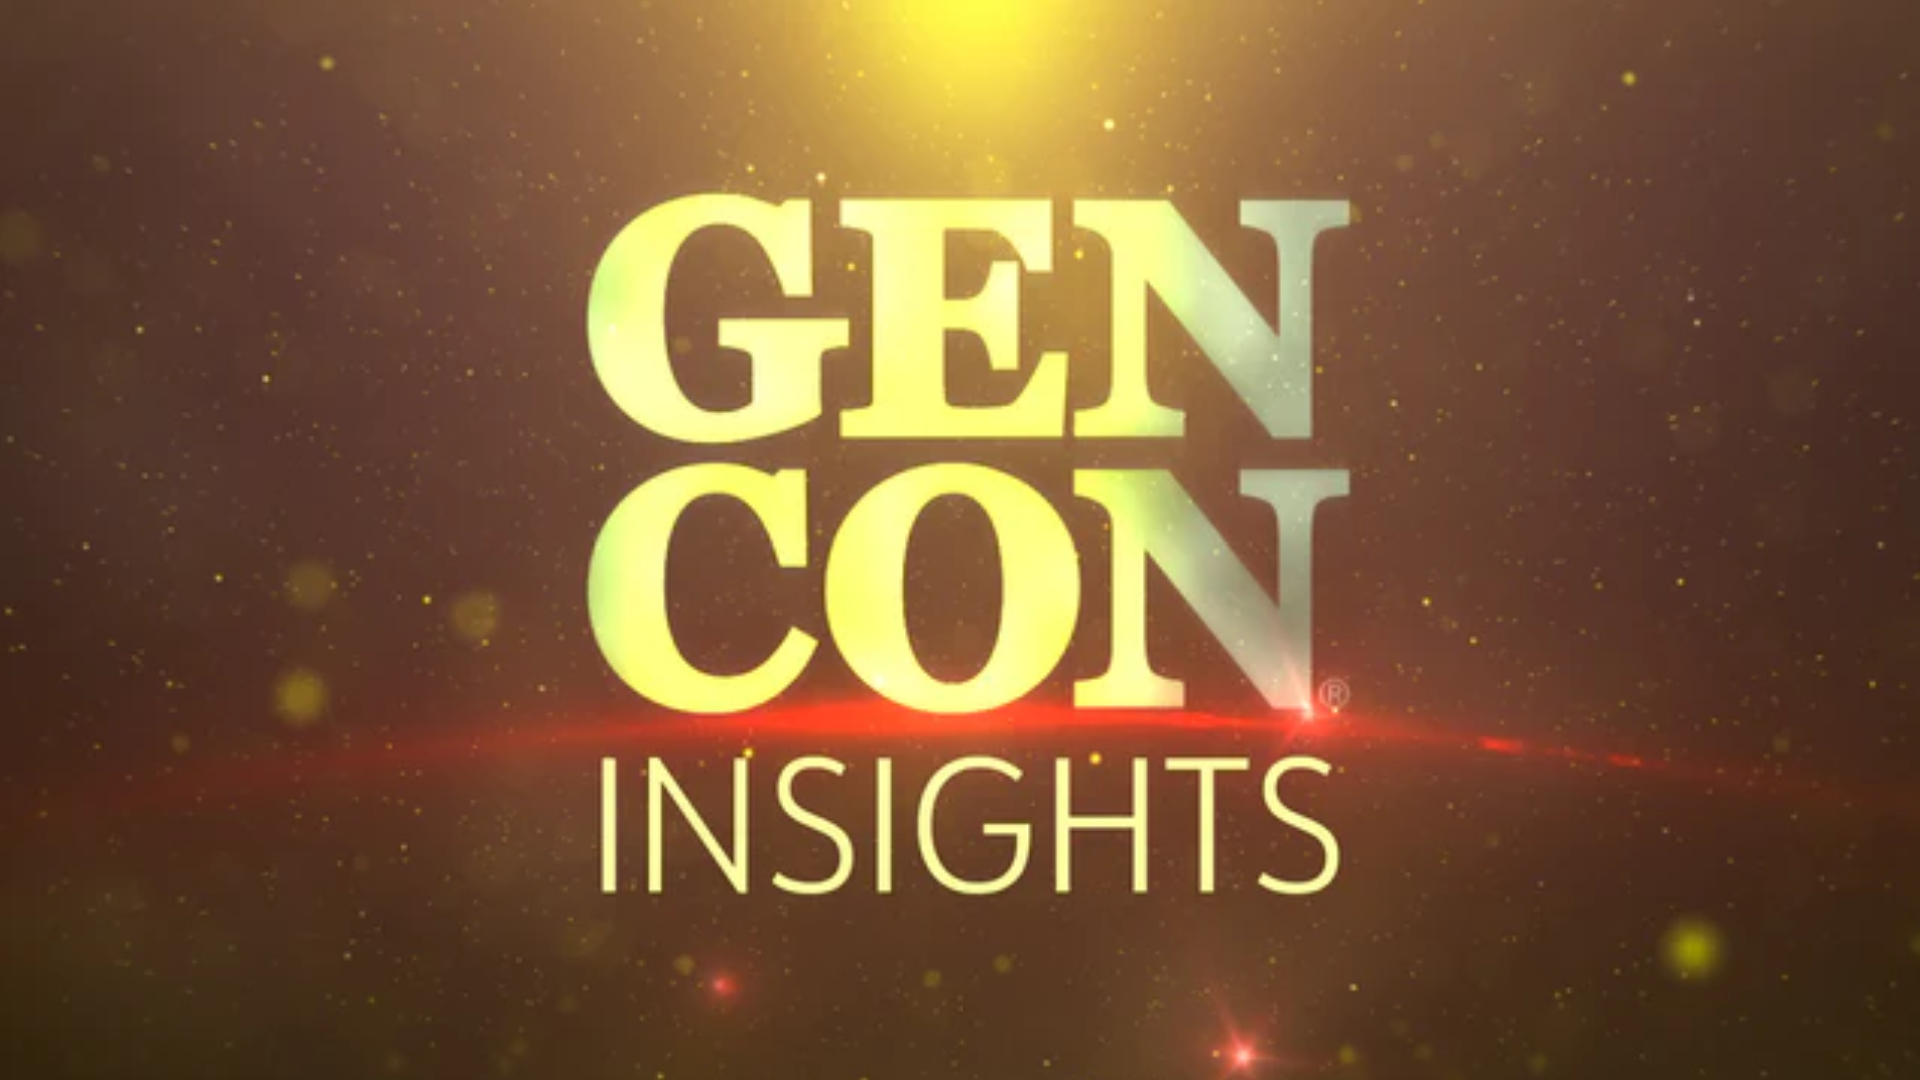 Gen Con Insights